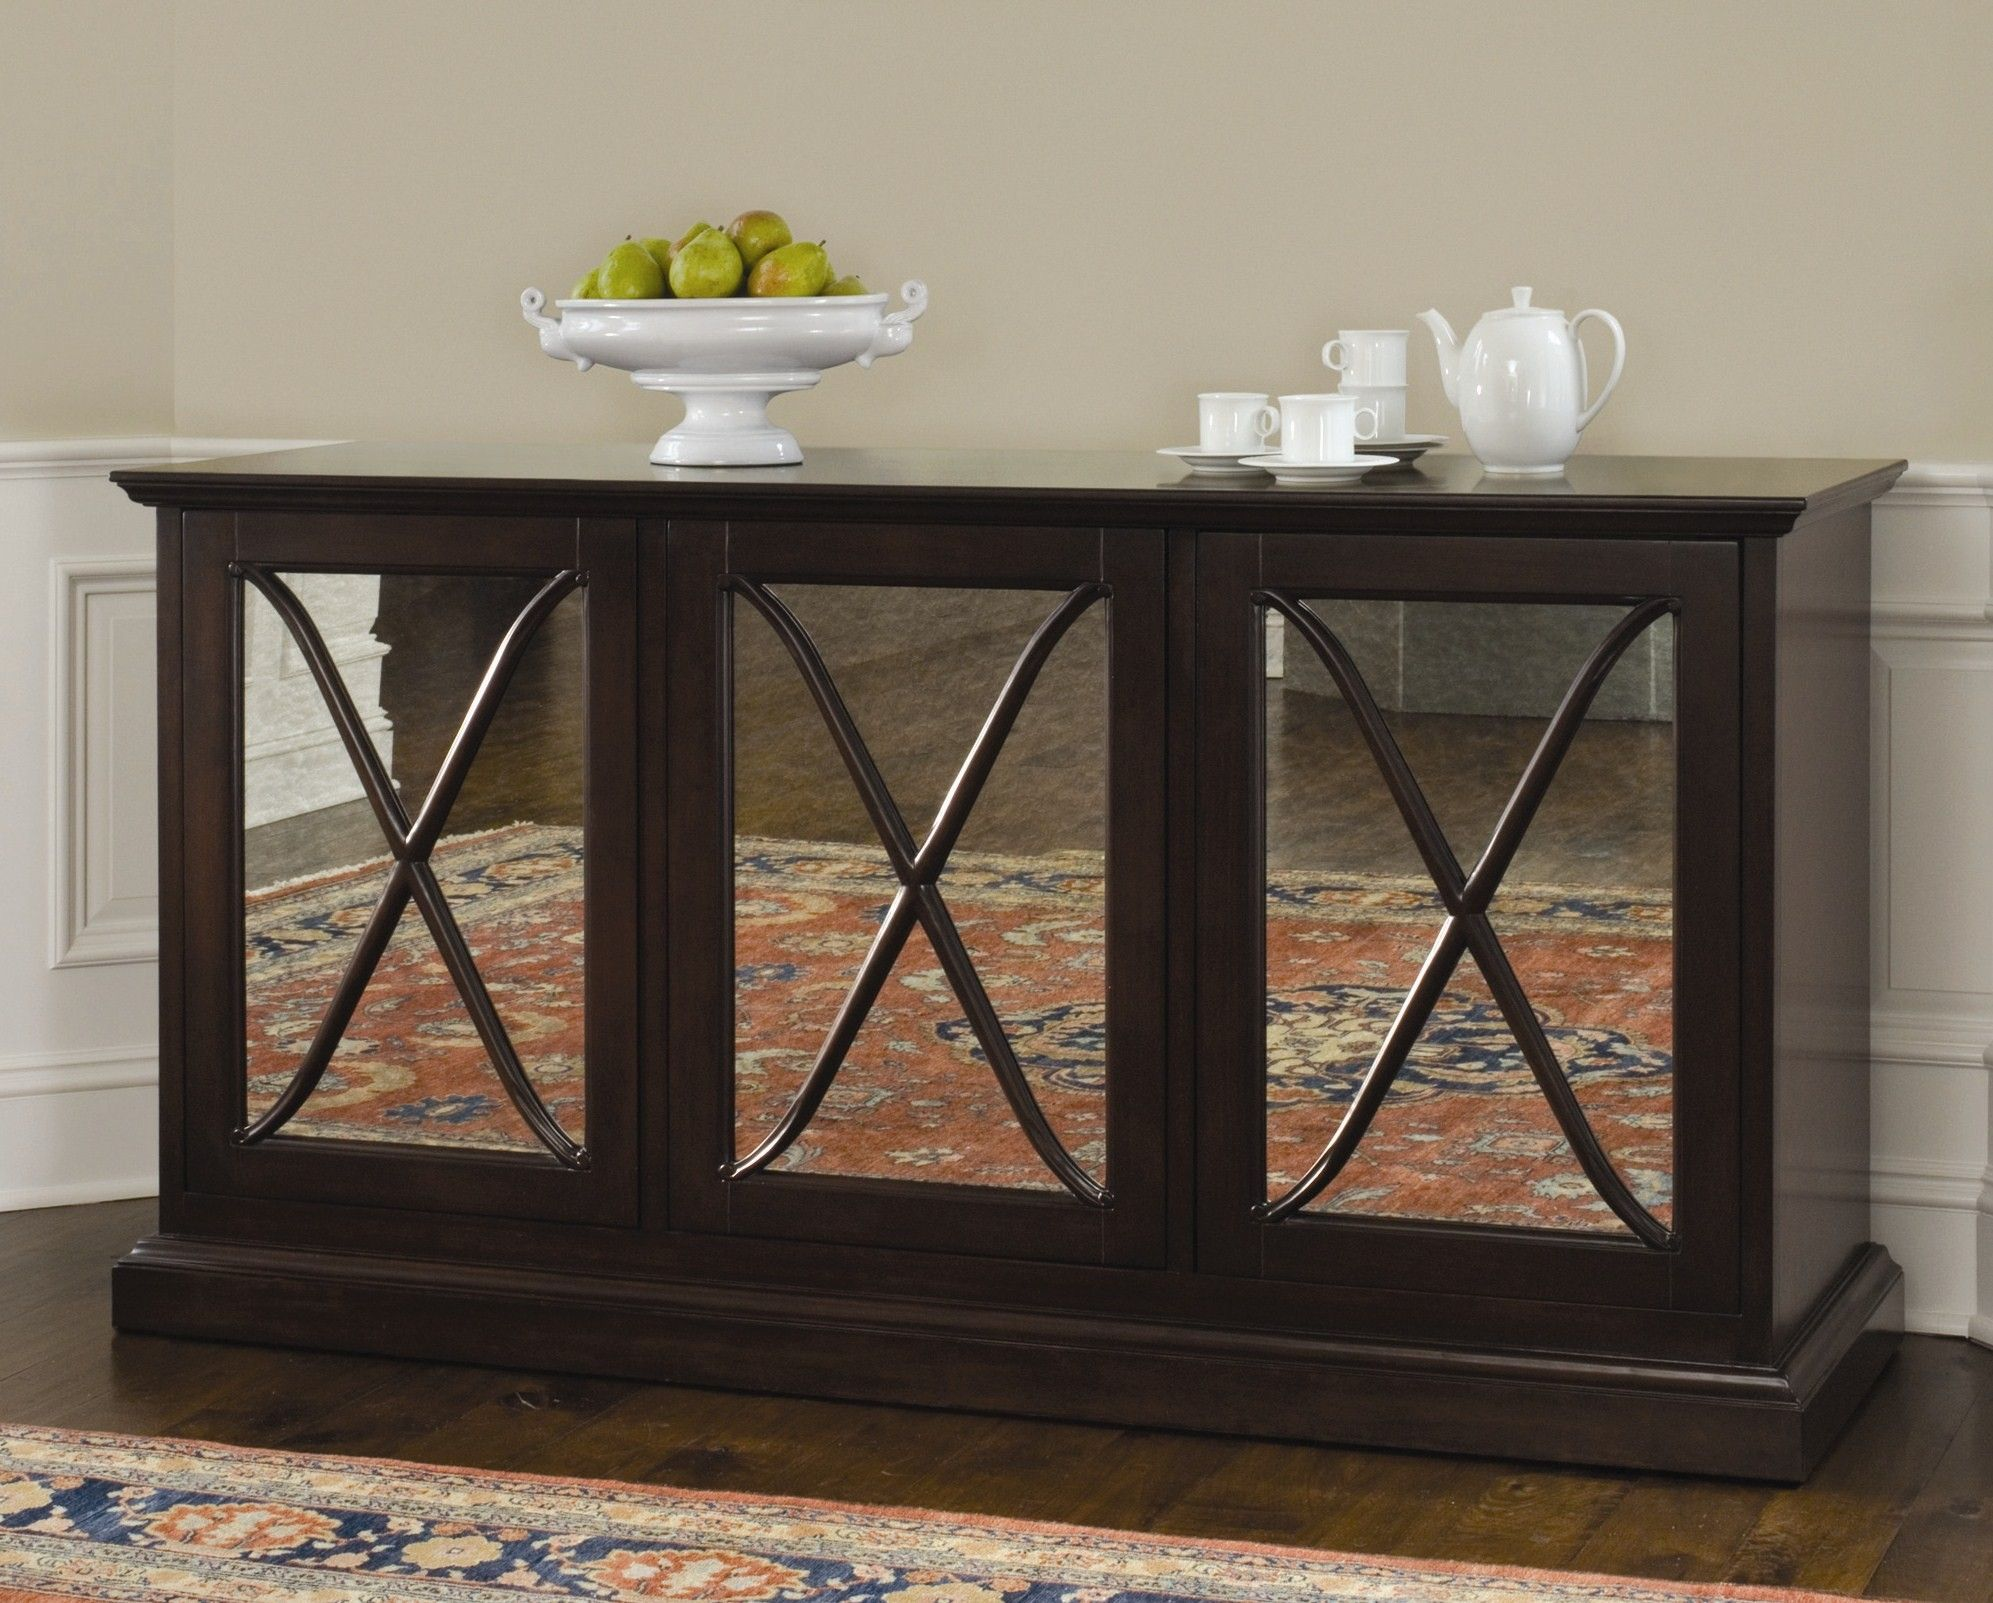 Painted buffet table furniture - Luxury Mirrored Modern Buffet Table With Triple Door Added Dark Brown Painted Also Modern Living Rugs